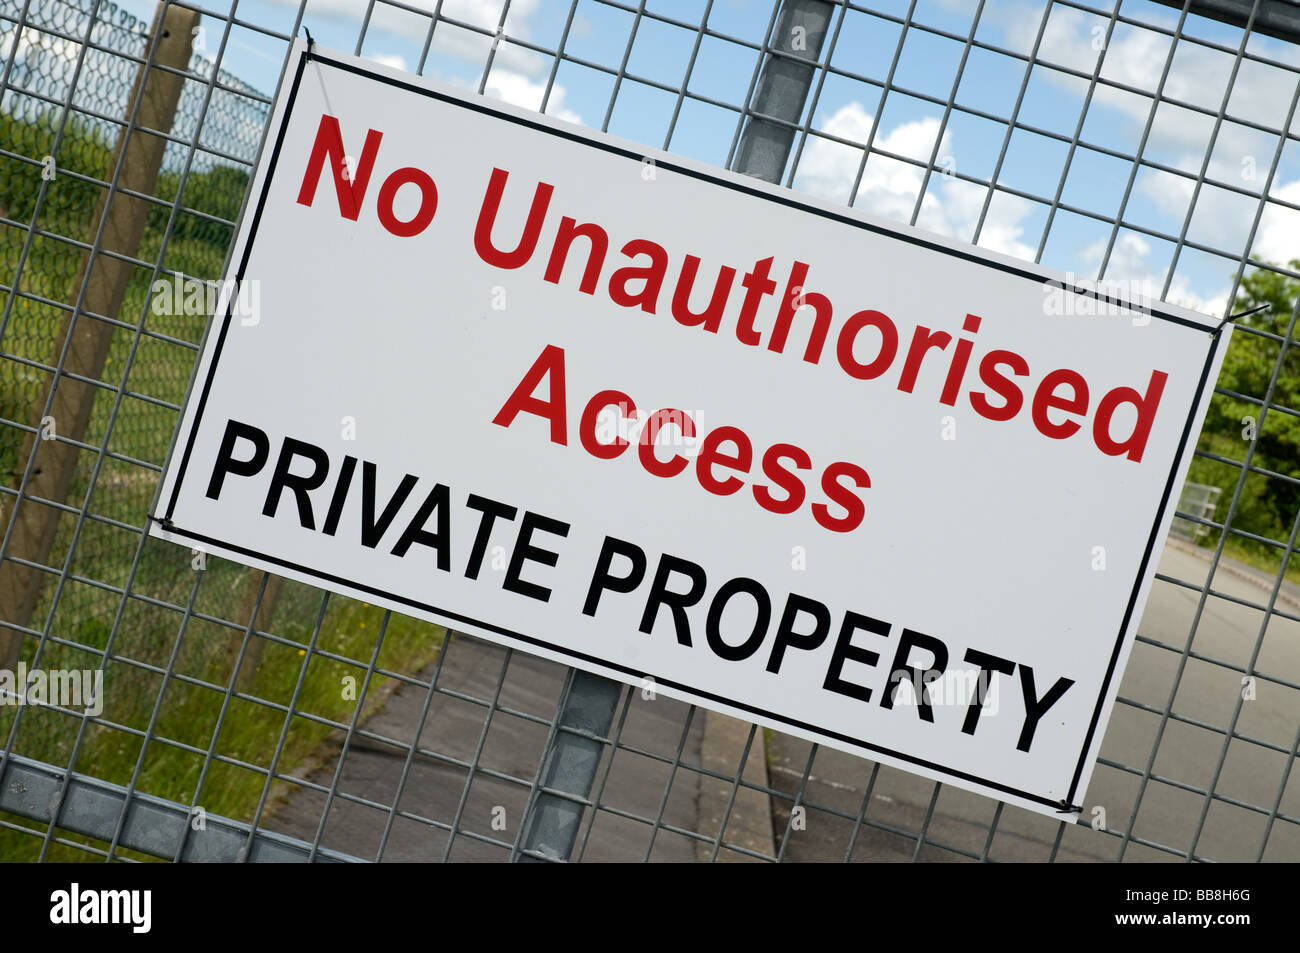 No unauthorused access Private propery sign or notice. Stock Photo